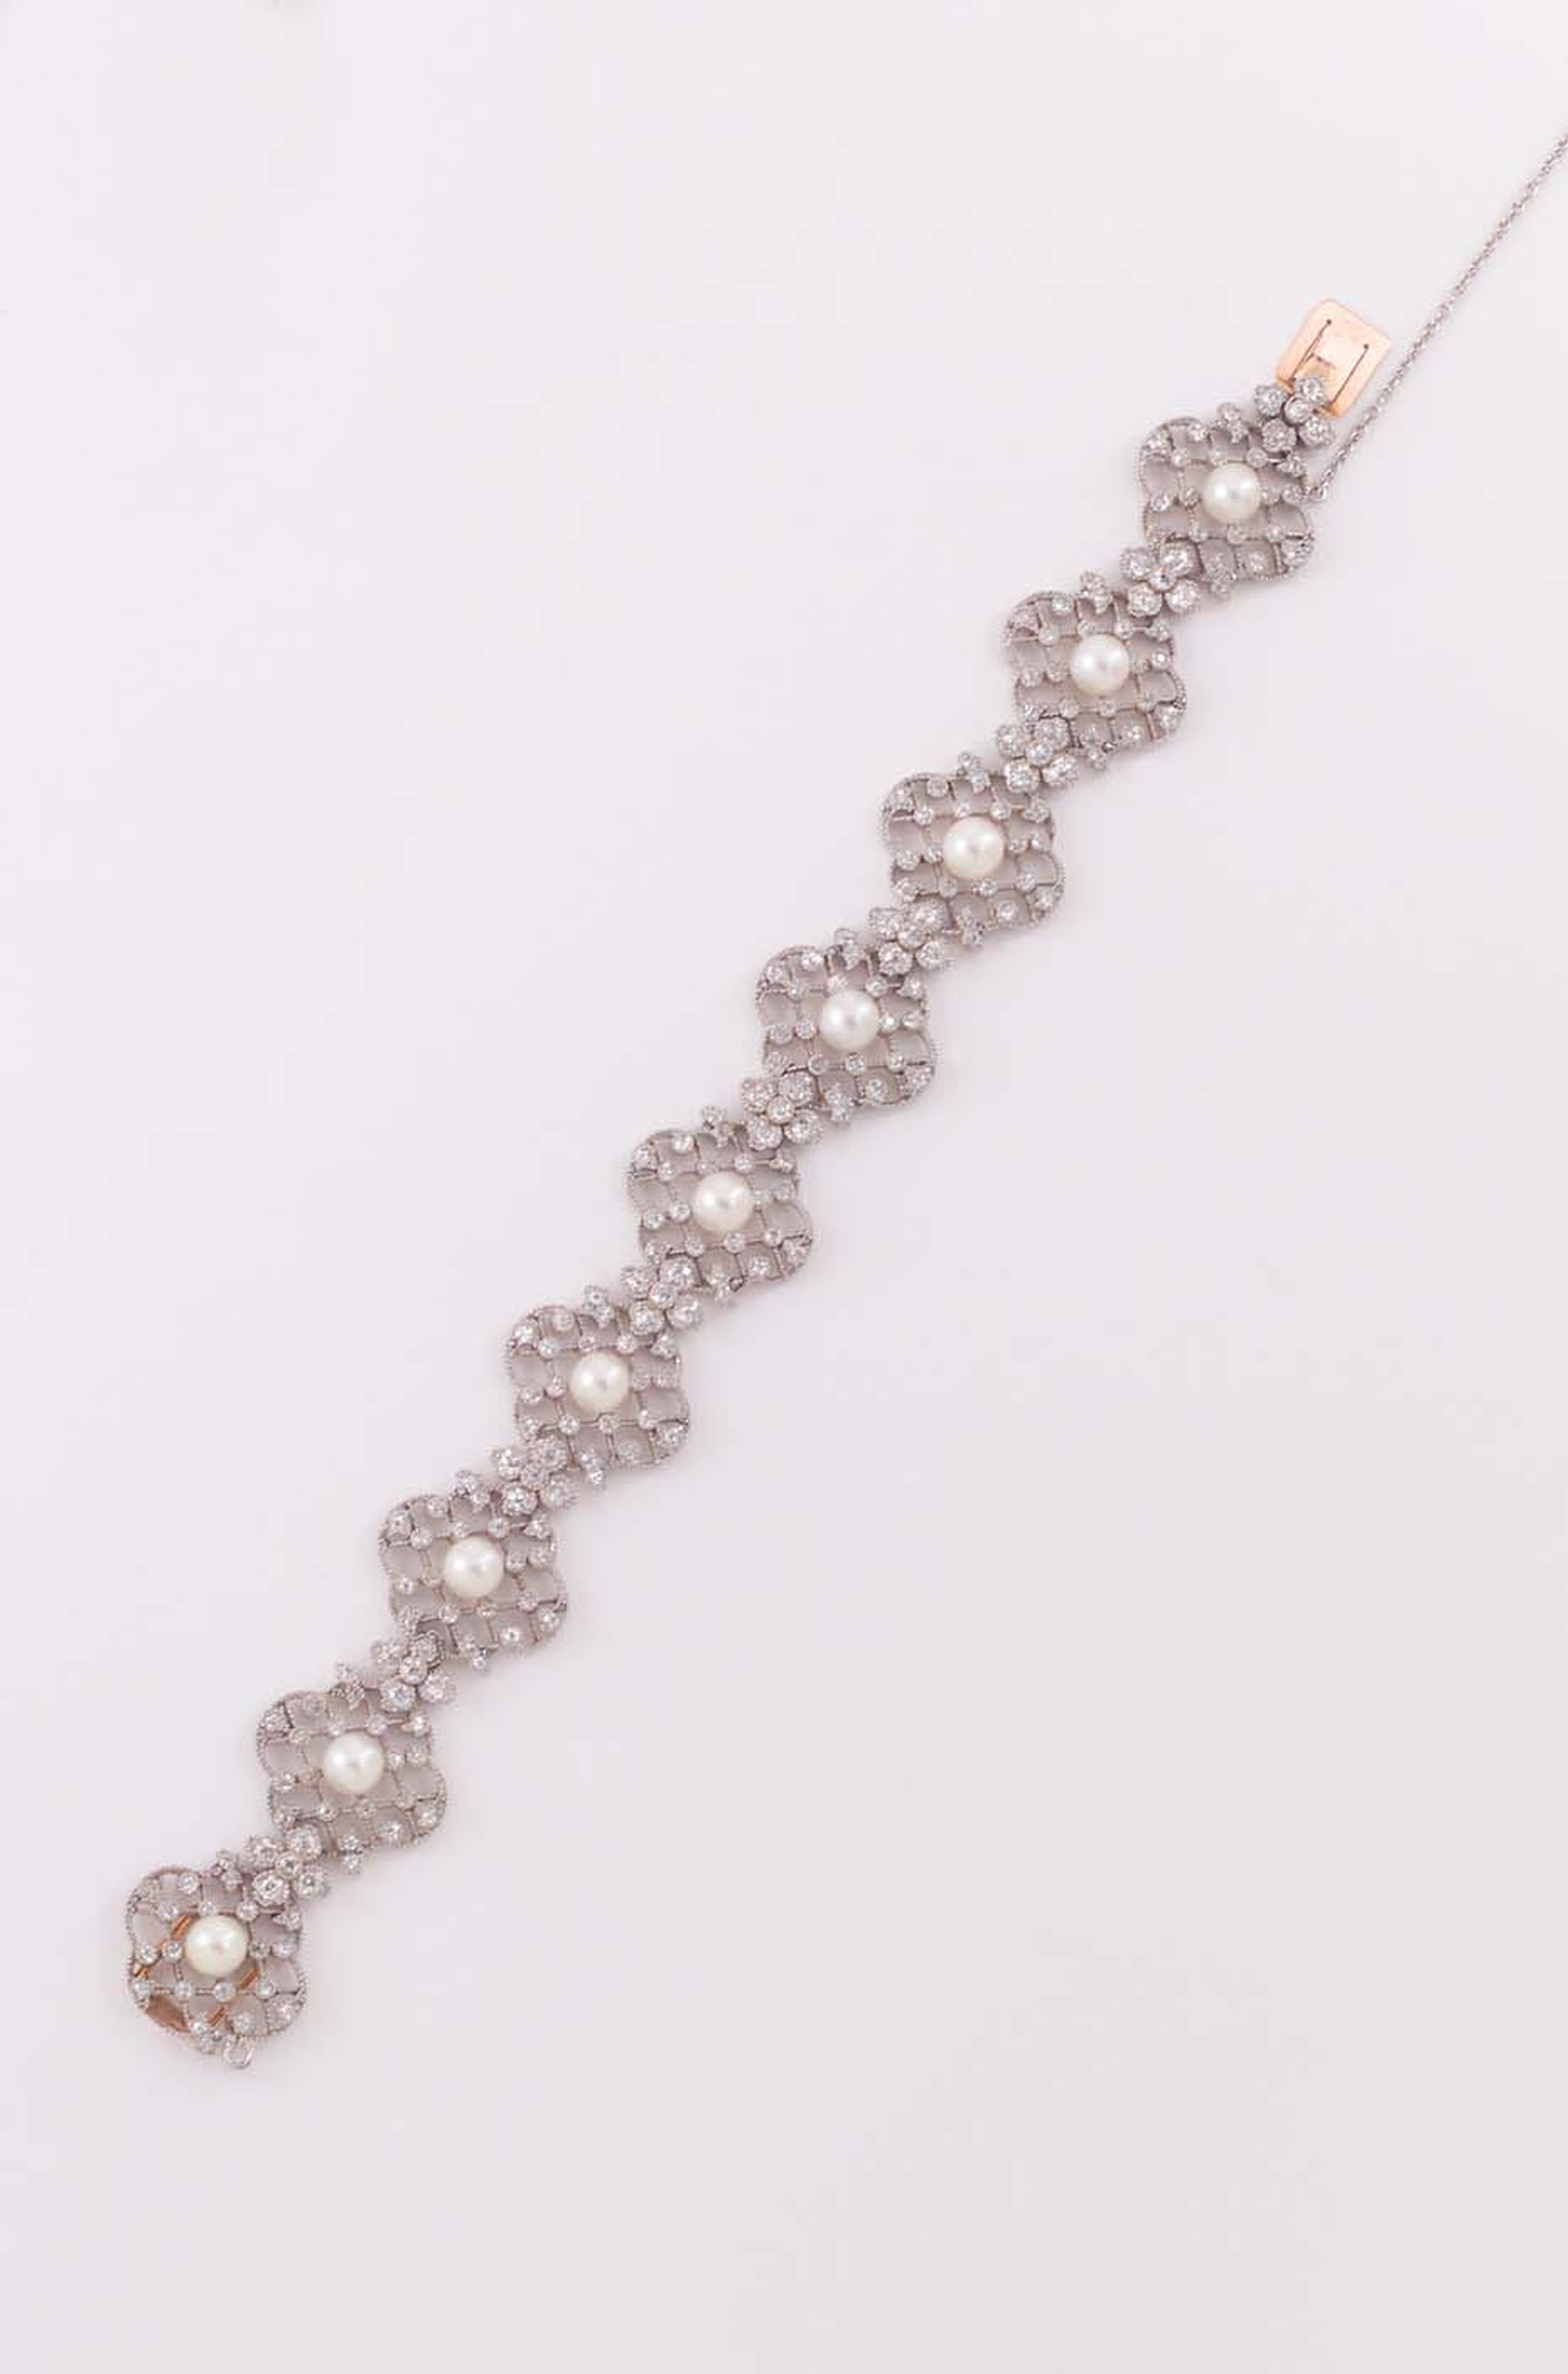 The vintage floral diamond and pearl bracelet by Neil Lane worn by Zooey Deschanel to the Golden Globes 2014